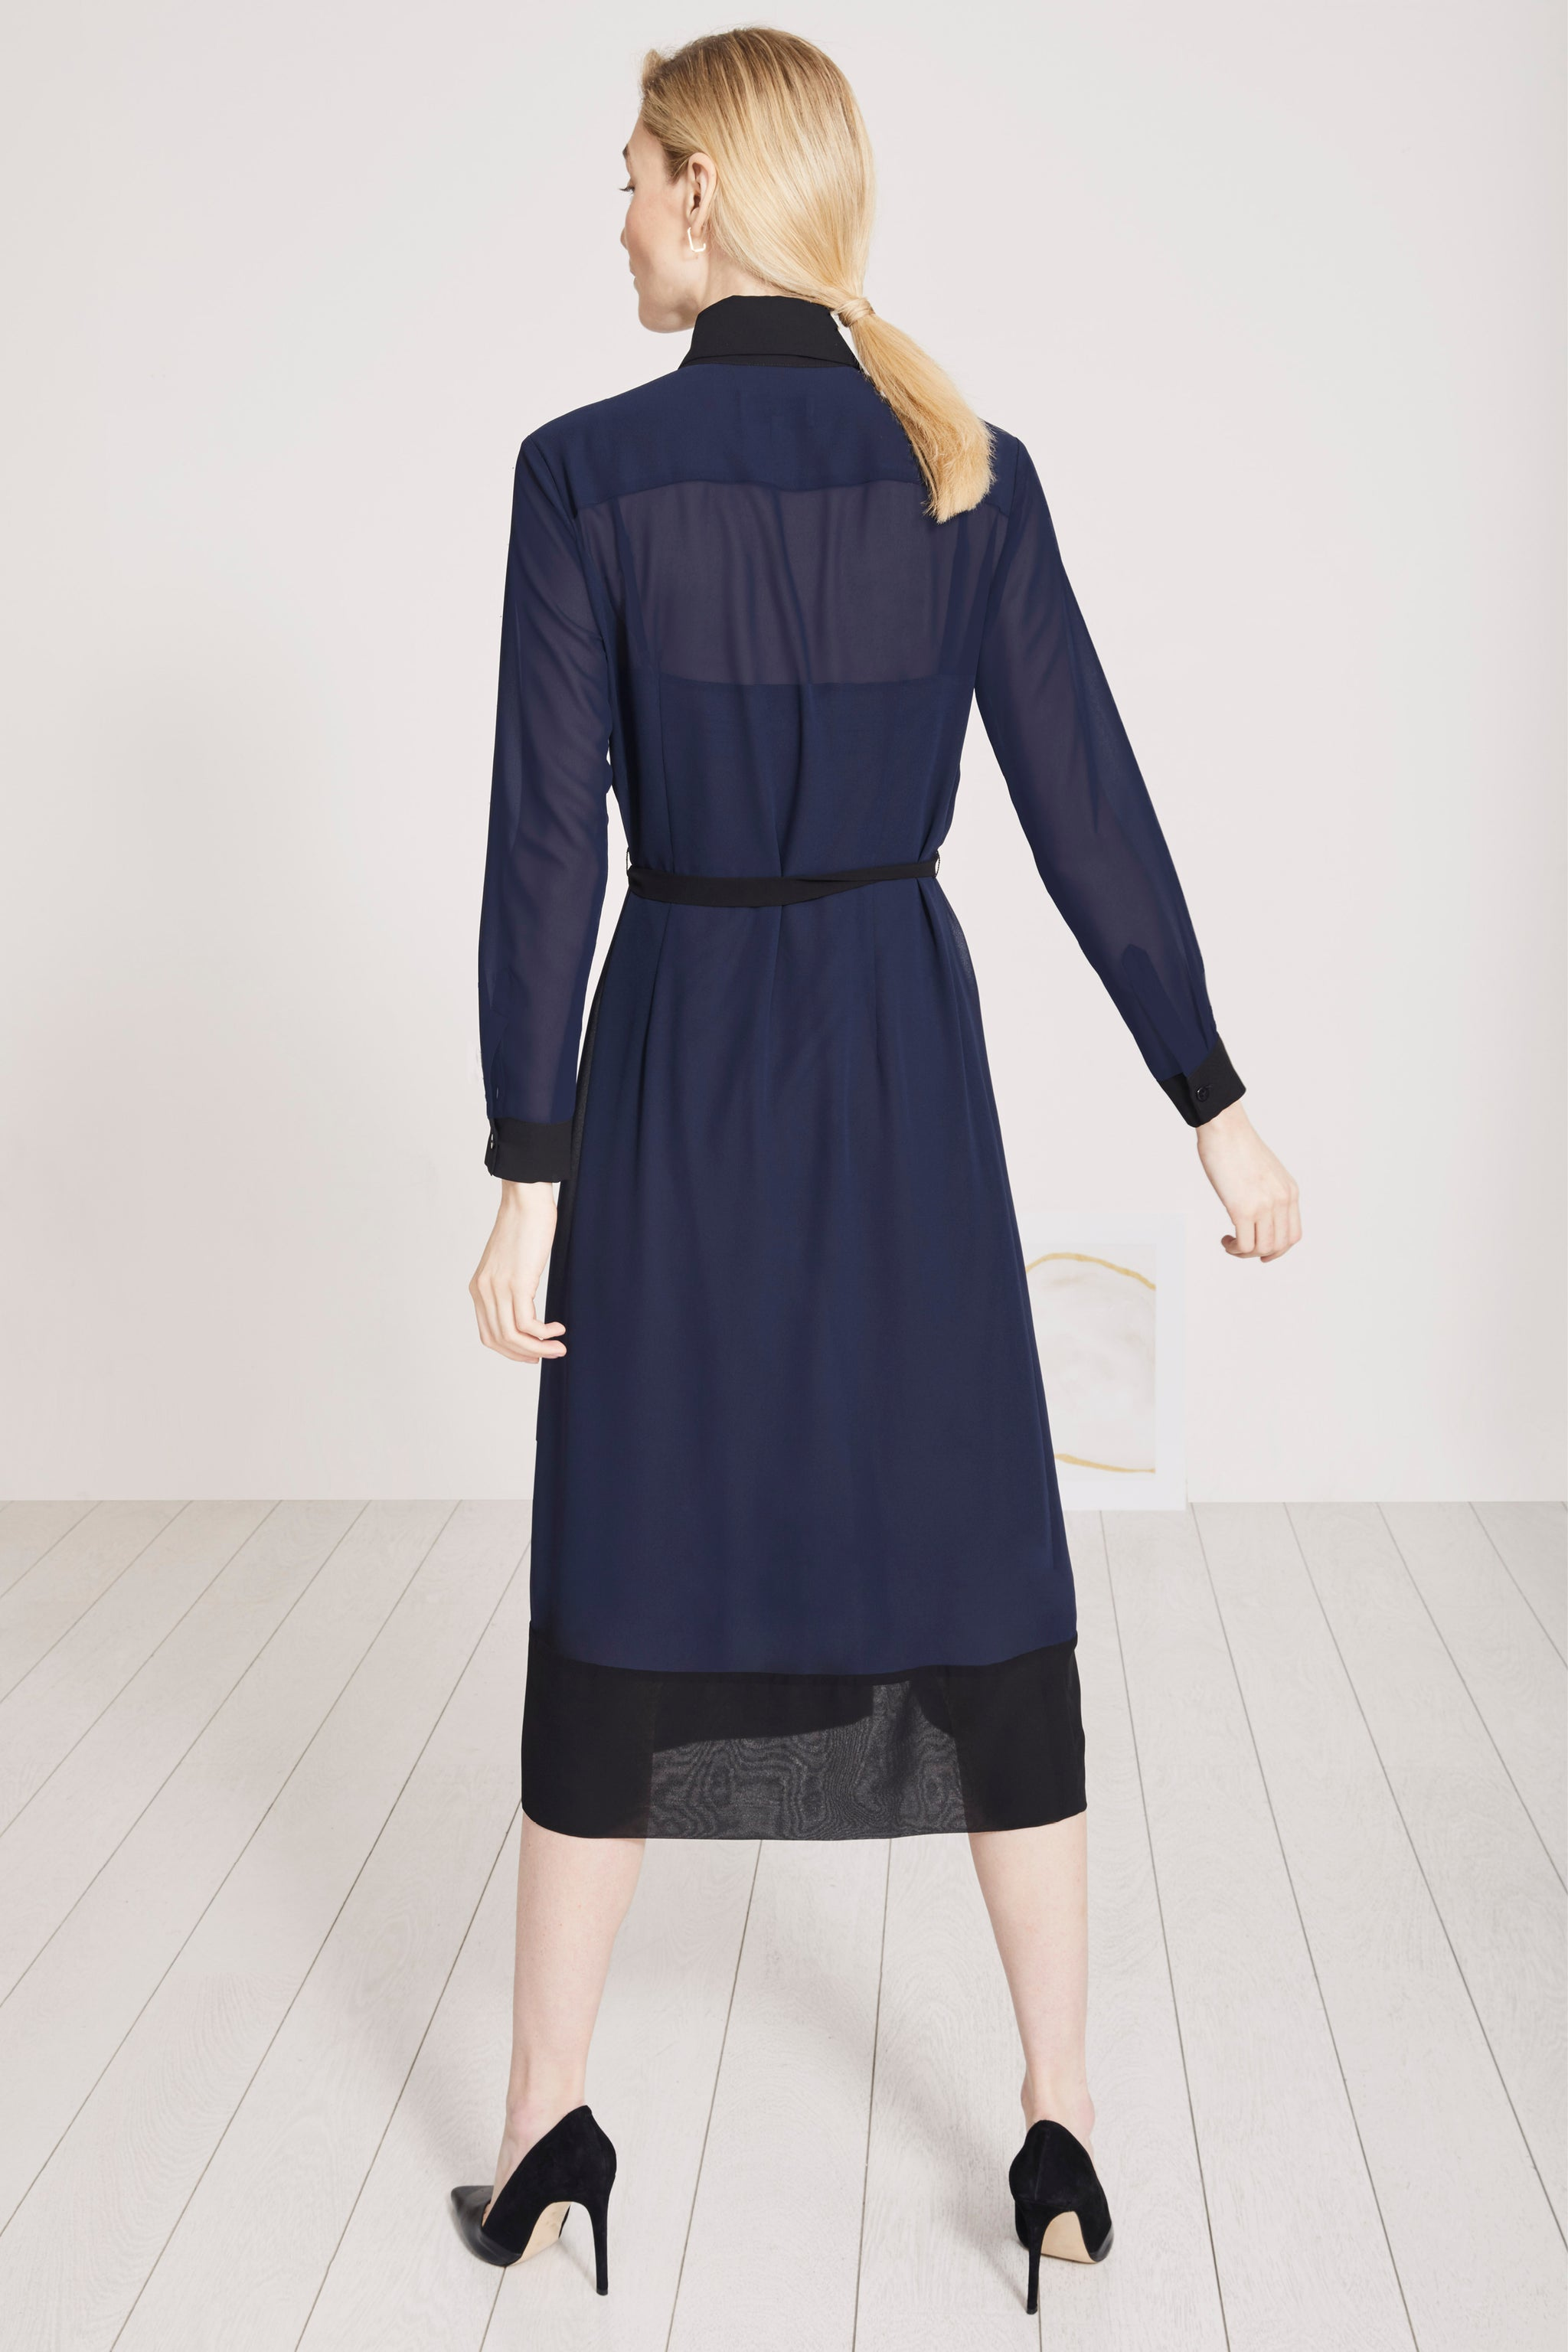 Arundel Navy and Black Midi Shirt Dress